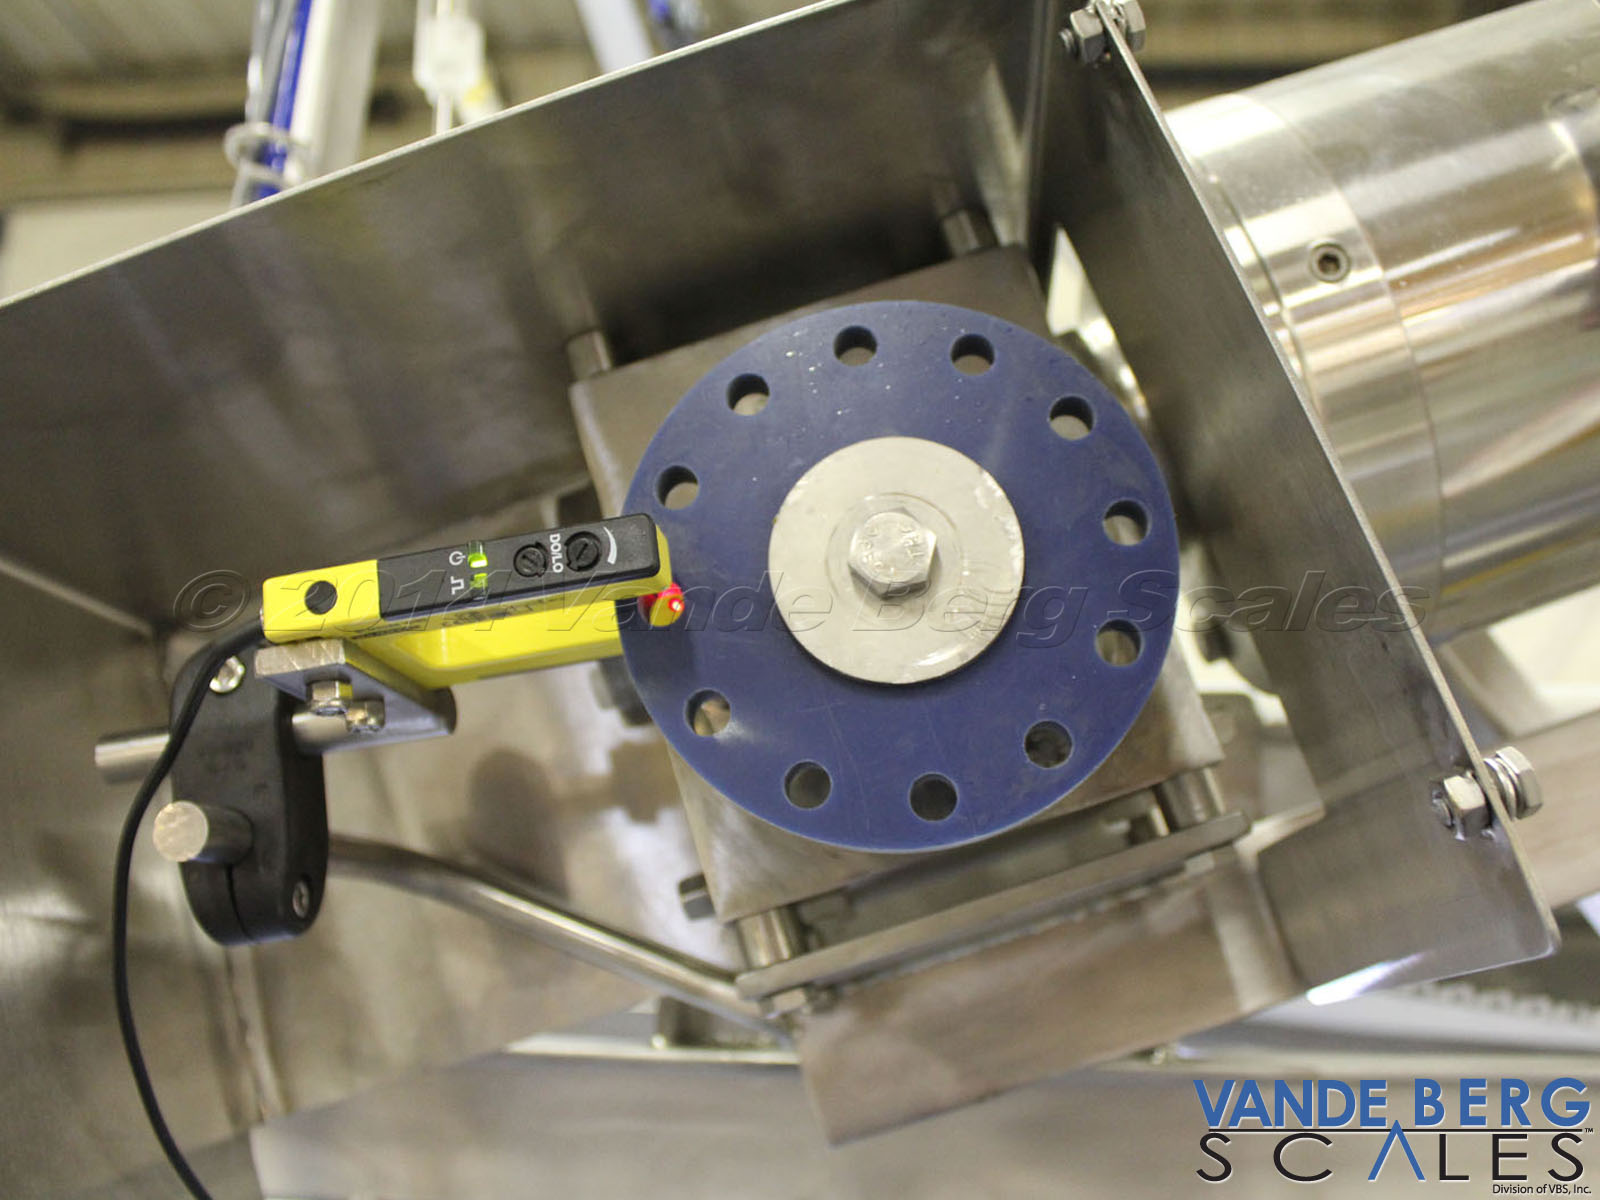 Encoder permits sorting based on distance which is more accurate and reliable than time-based sorting systems.